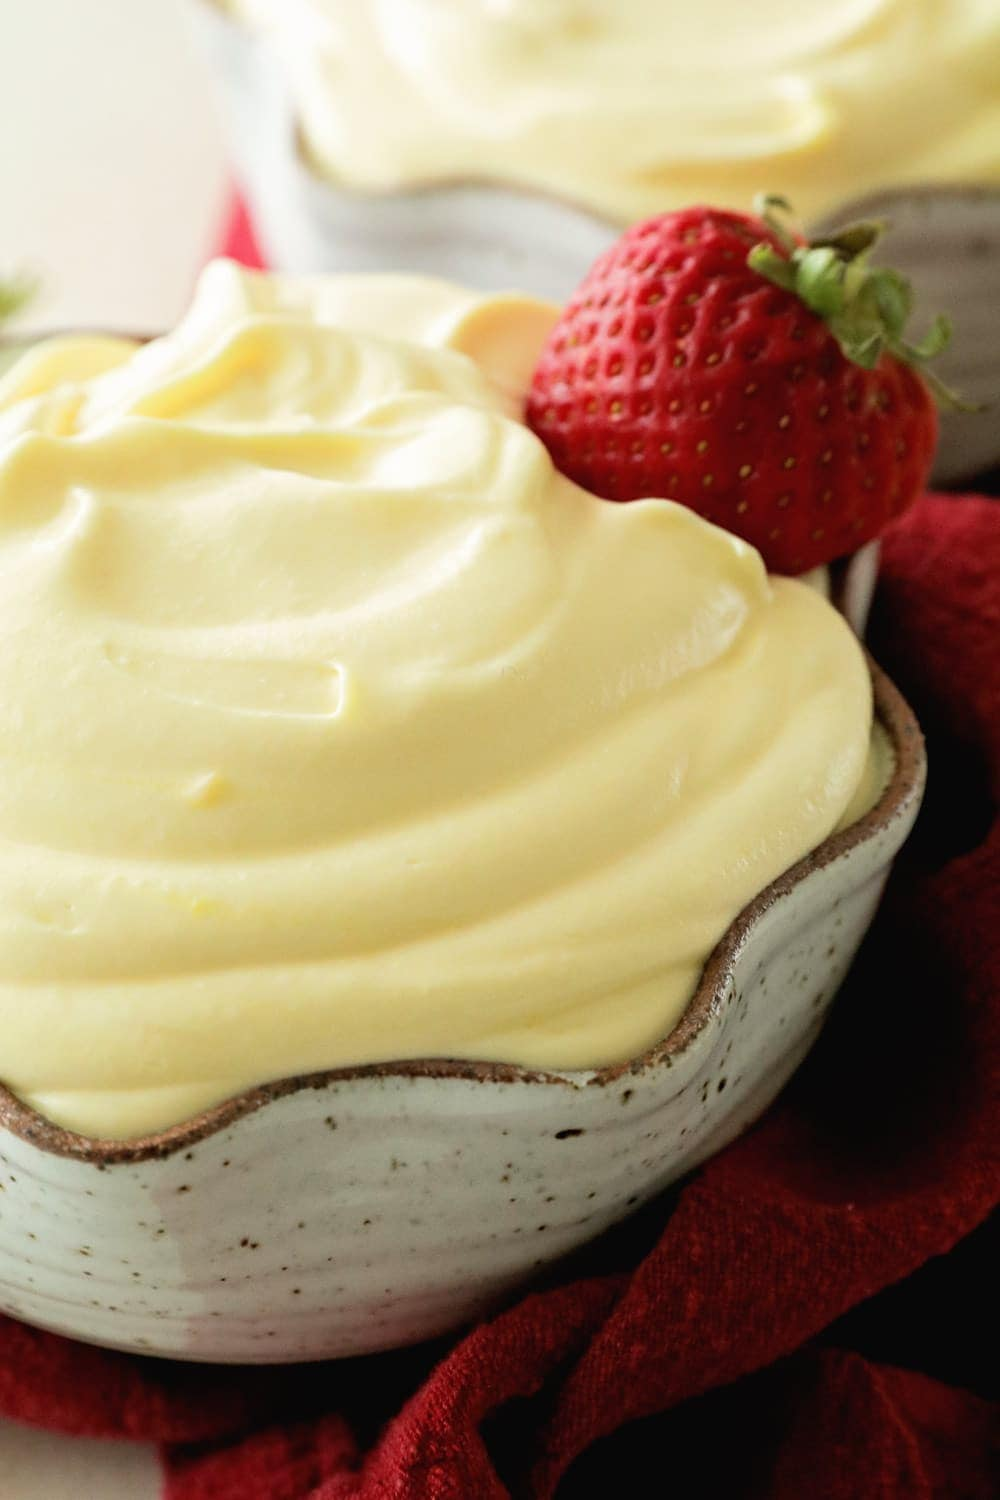 Easy Vanilla Pudding ~ This Quick and Easy Pudding Only Requires 3 Ingredients! Light, Fluffy and Delicious!